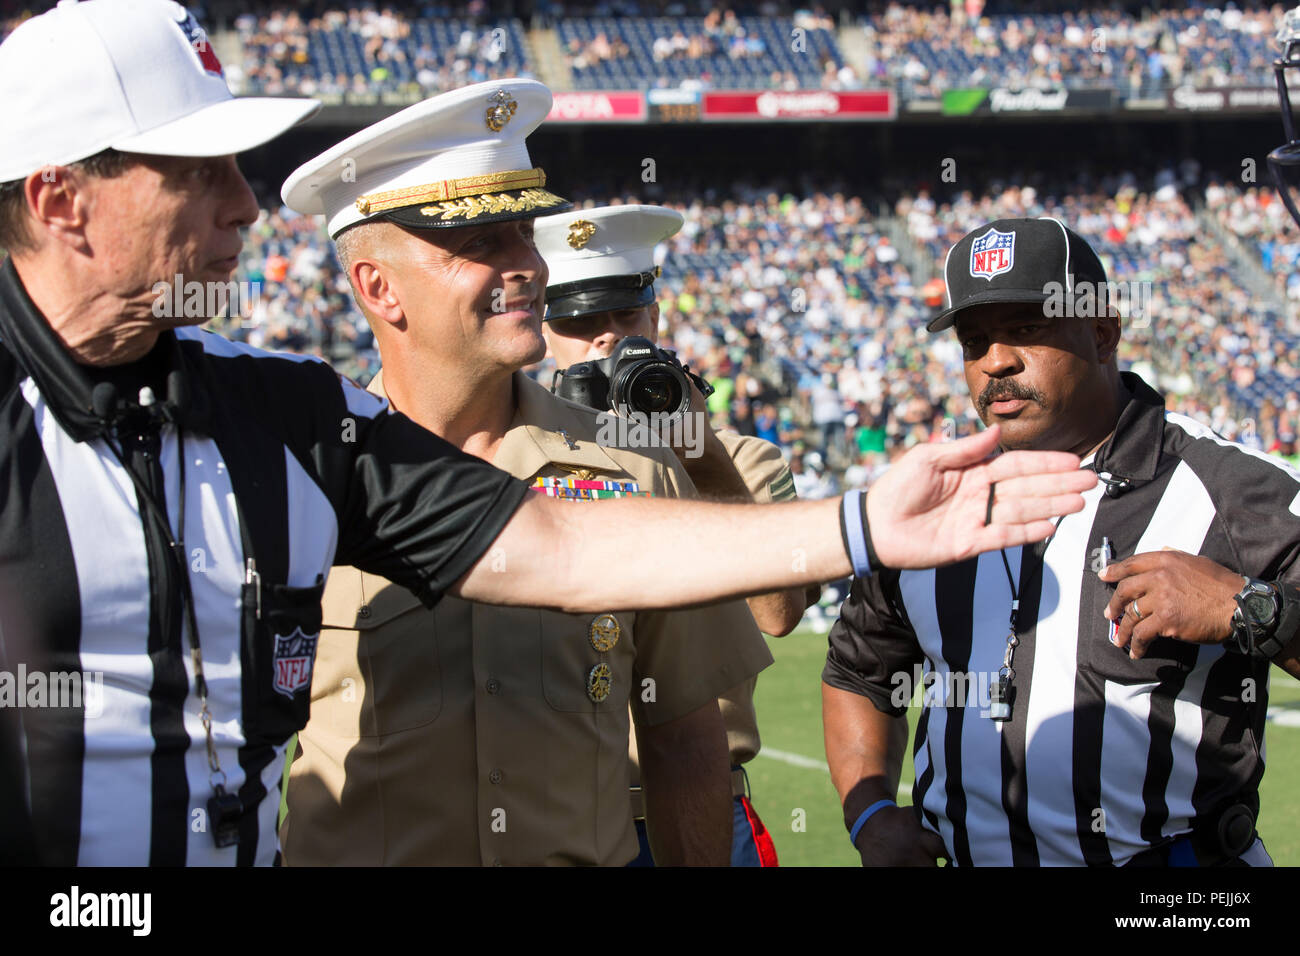 Maj. Gen. Michael Rocco, commanding general of the 3rd Marine Aircraft Wing, watches the decision of the coin toss prior to the game between the San Diego Chargers and Seattle Seahawks in Chargers Stadium, San Diego, Aug. 29. Marines stationed aboard MCAS Miramar participated in the opening ceremony prior to the game between San Diego Chargers and Seattle Seahawks. (U.S. Marine Corps photo by Sgt. Lillian Stephens/Released) - Stock Image